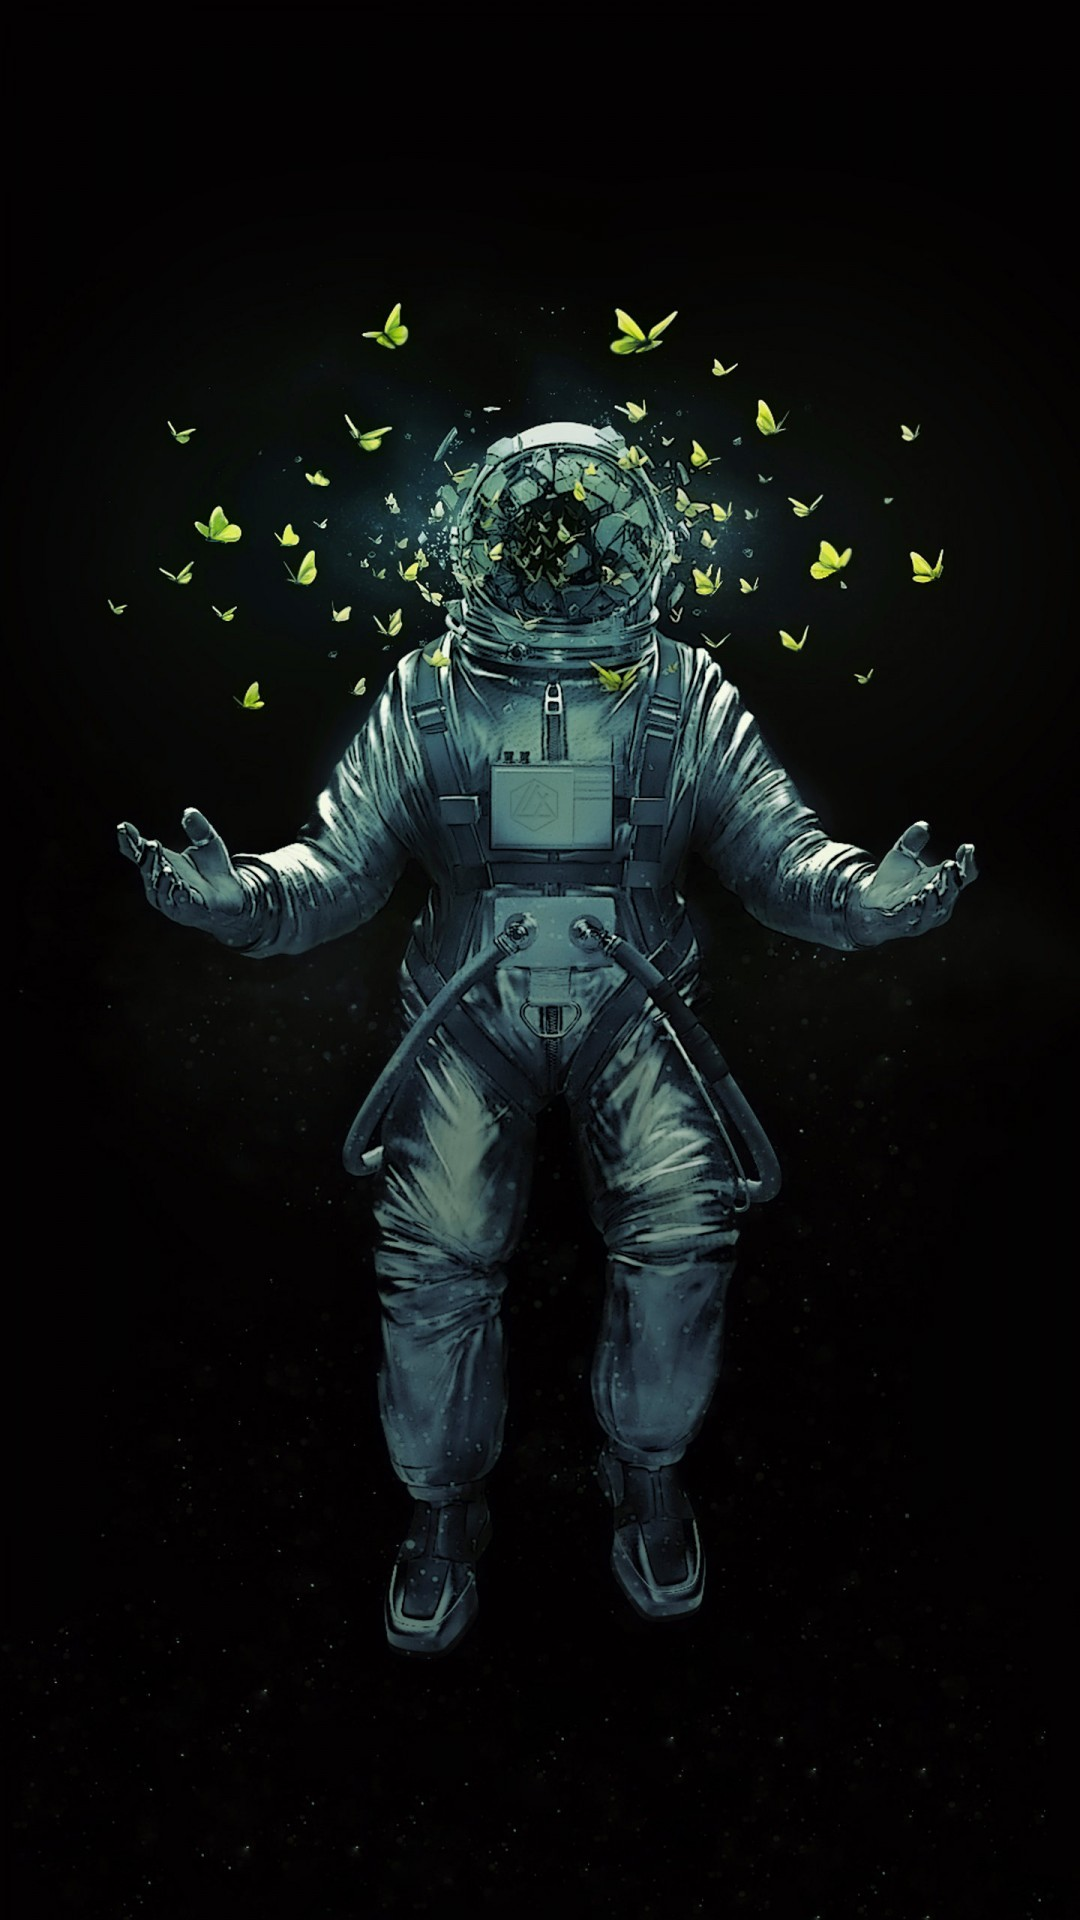 Astronauts Hd Wallpapers For Iphone 7 Wallpapers Pictures